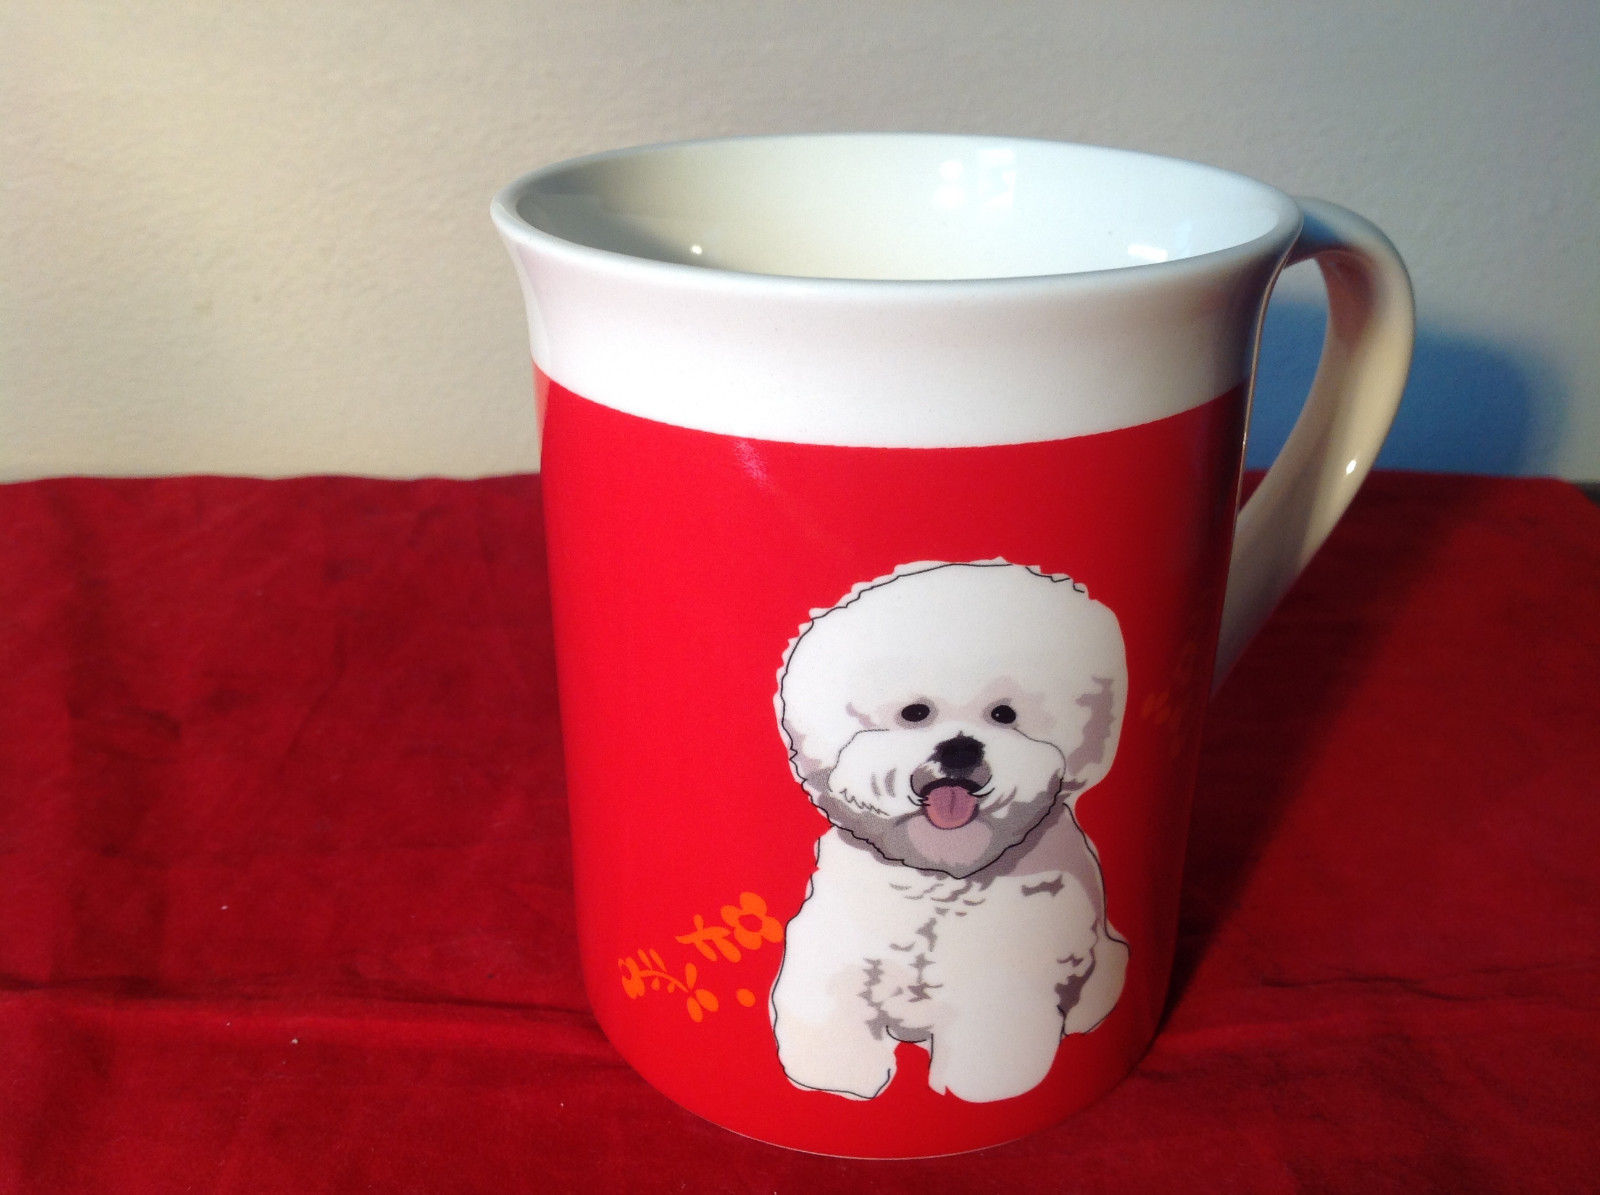 Go Dog Bichon Mug by Paper Russells w Original Box 16 ounces Department 56